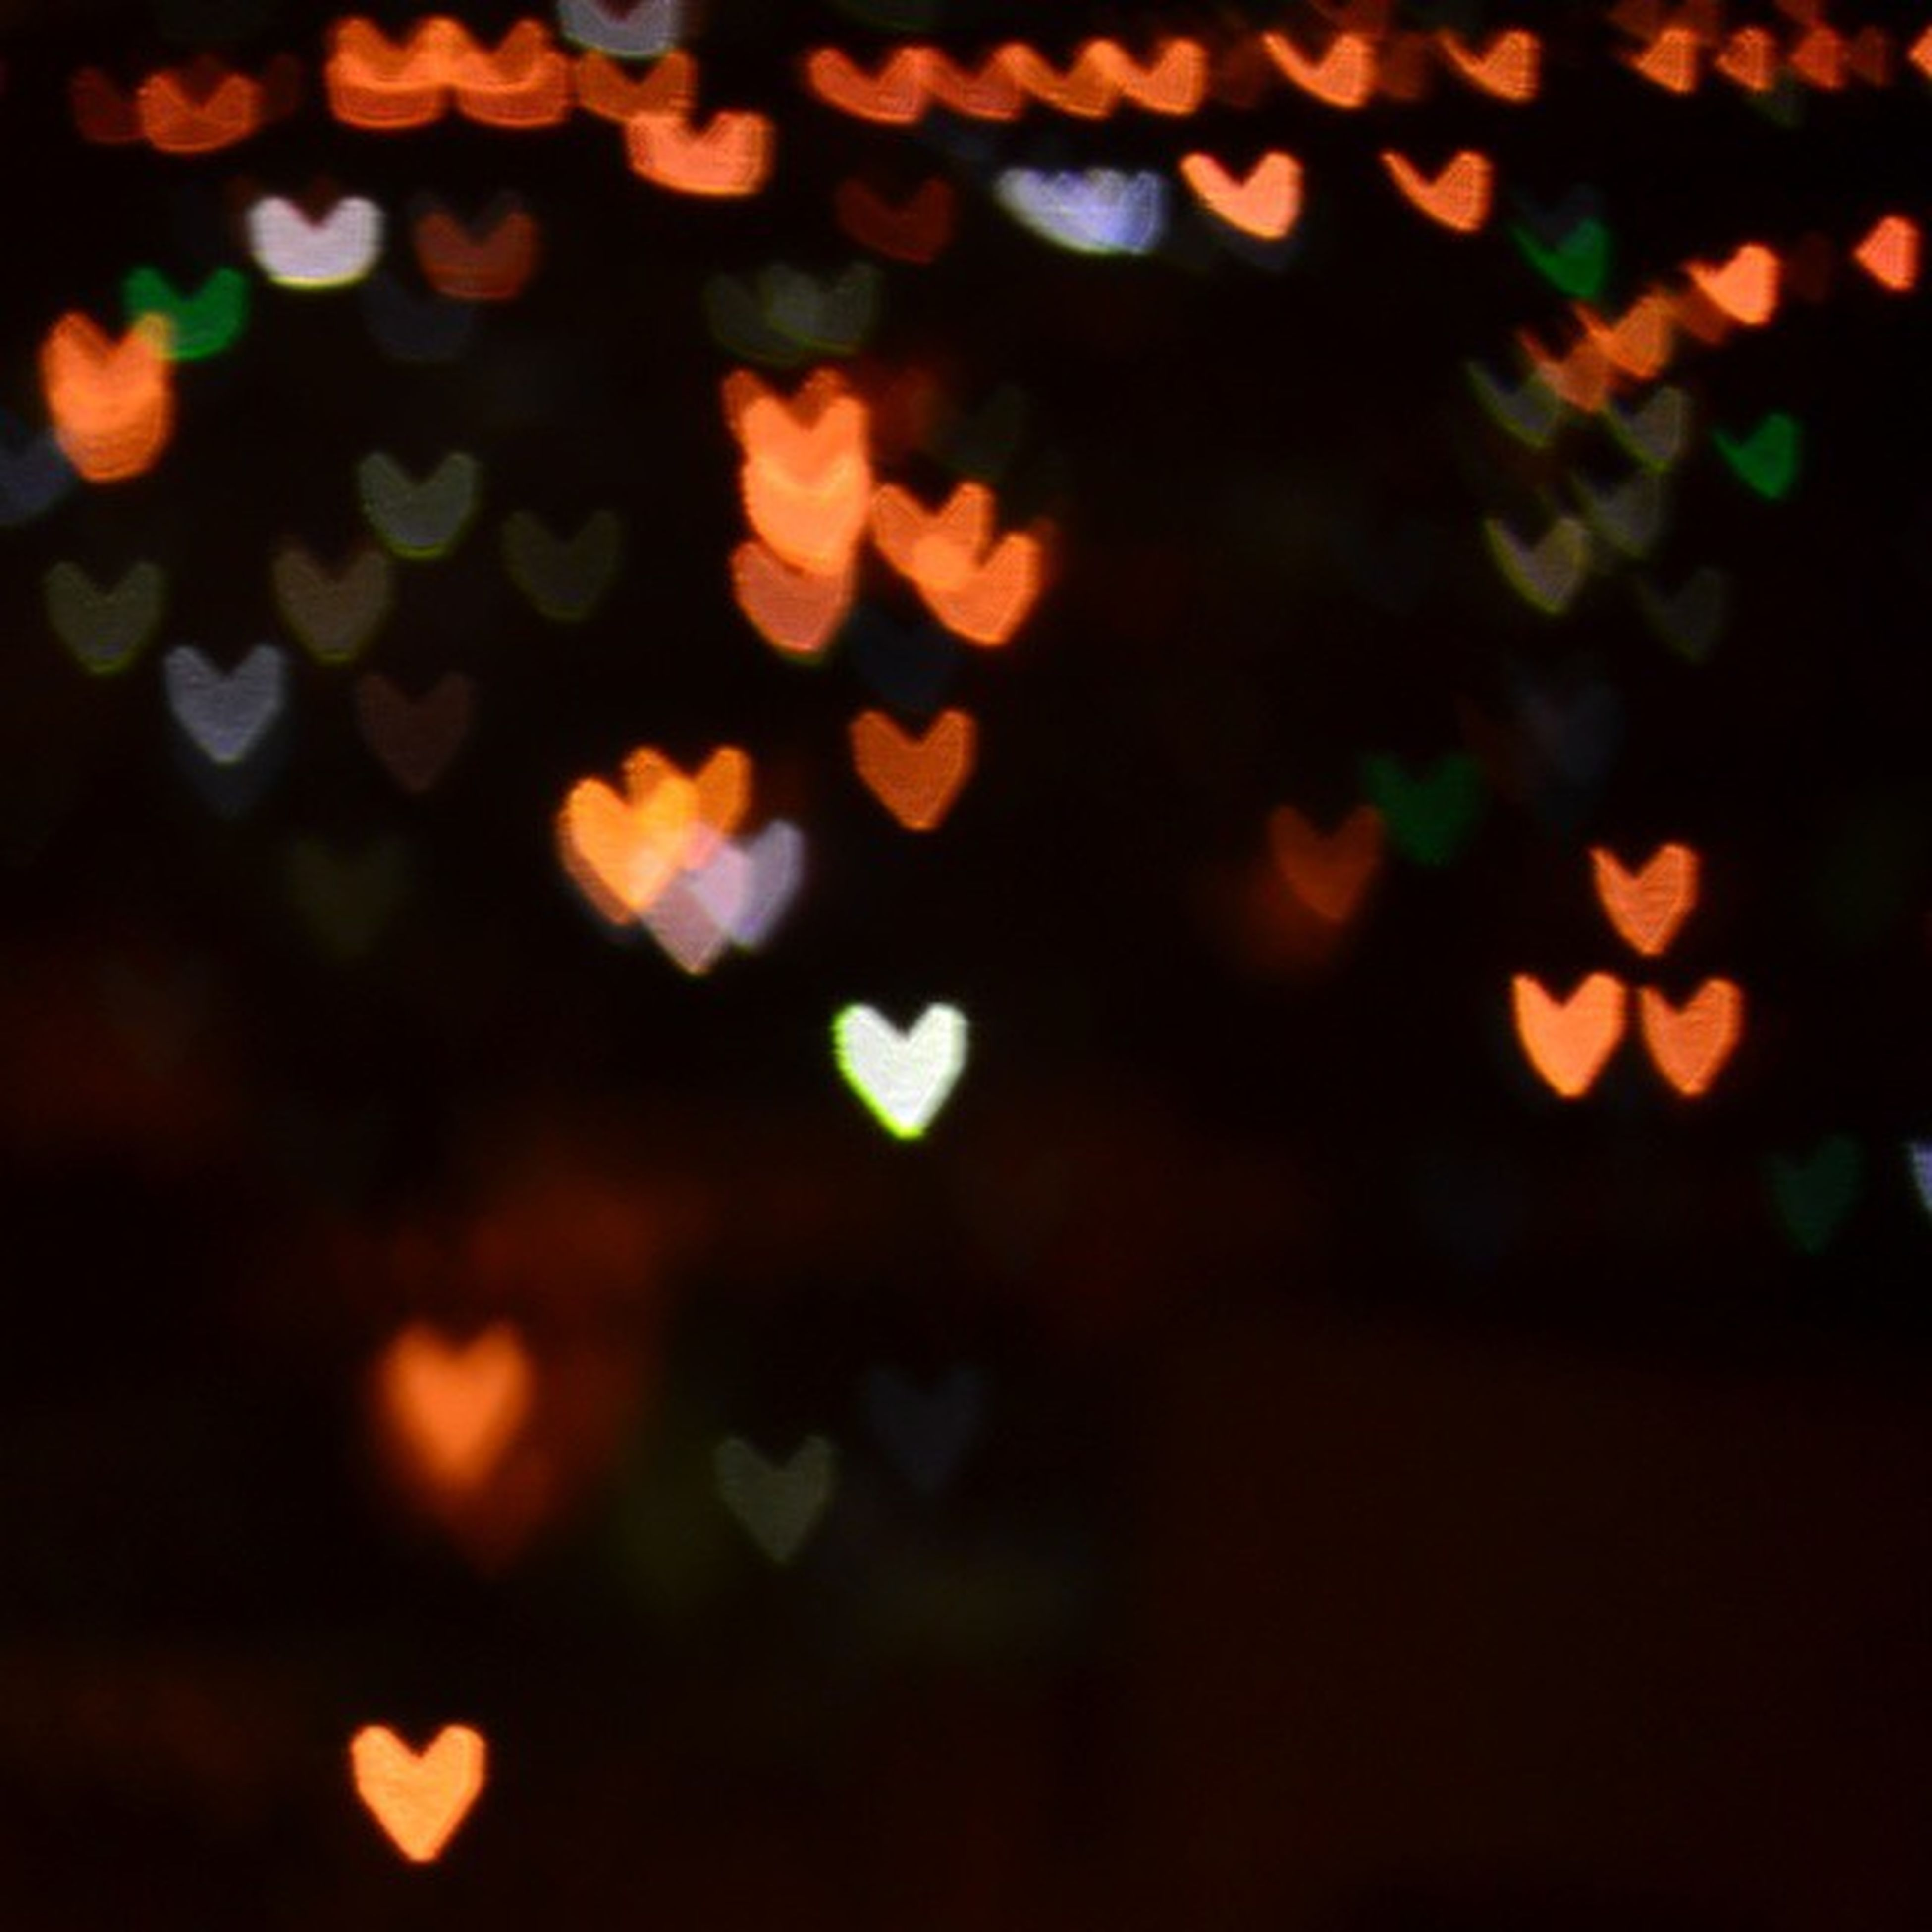 illuminated, night, defocused, focus on foreground, orange color, selective focus, close-up, sunset, no people, nature, backgrounds, outdoors, dark, light - natural phenomenon, full frame, lens flare, tranquility, beauty in nature, glowing, growth